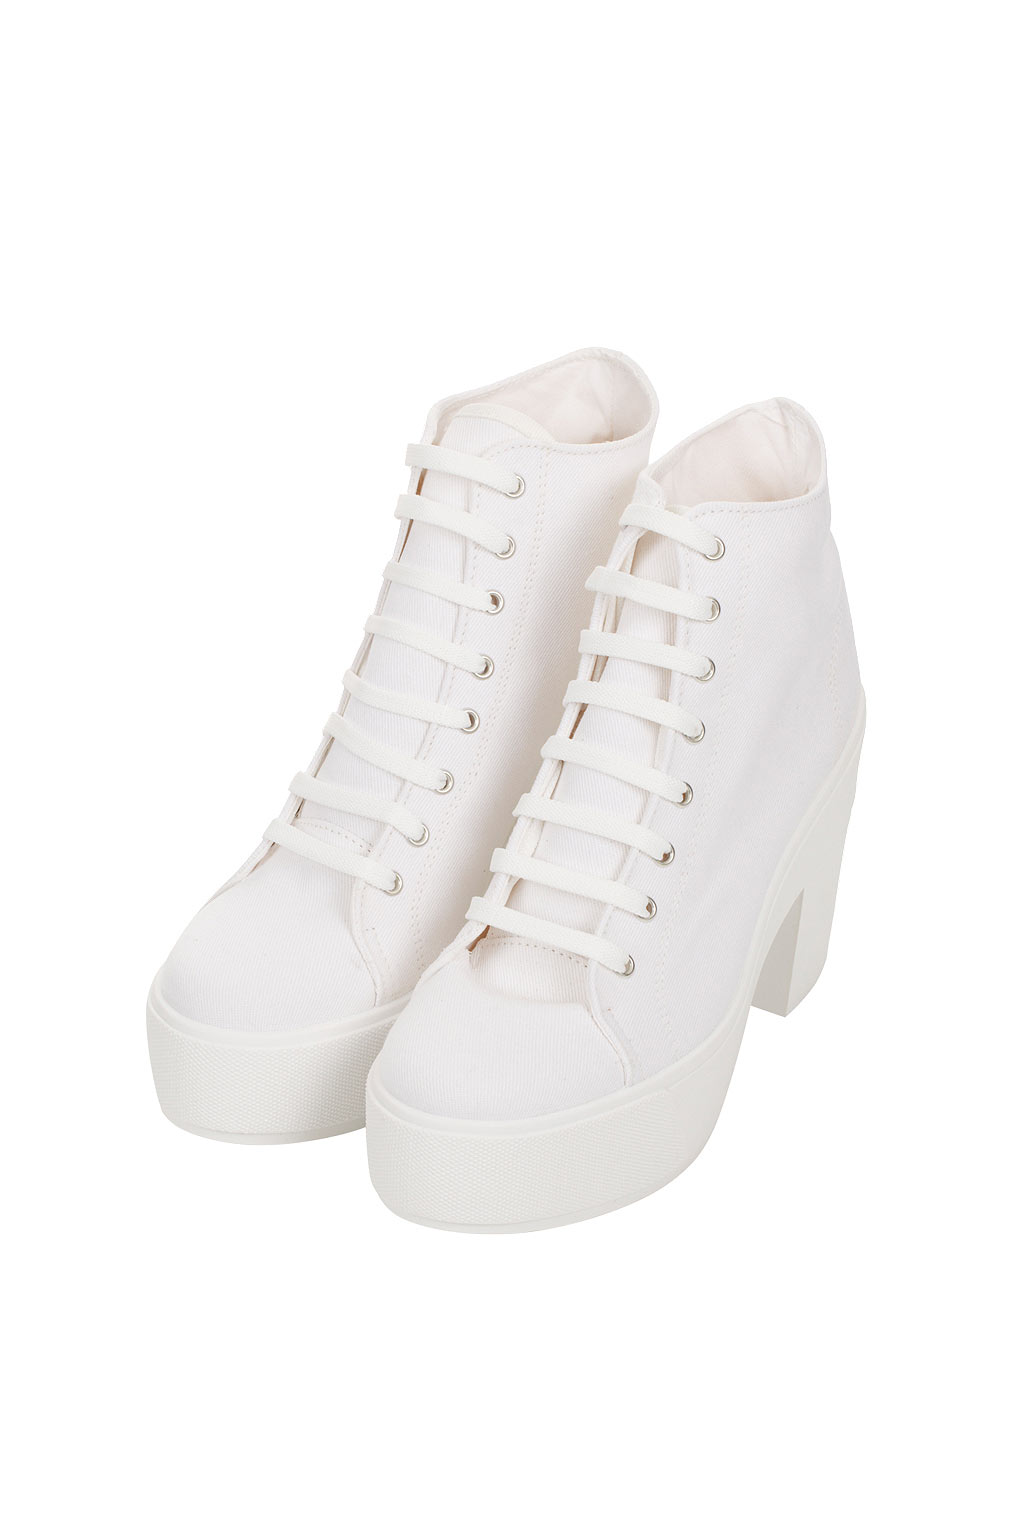 Topshop White Chunky Lace Up Shoes